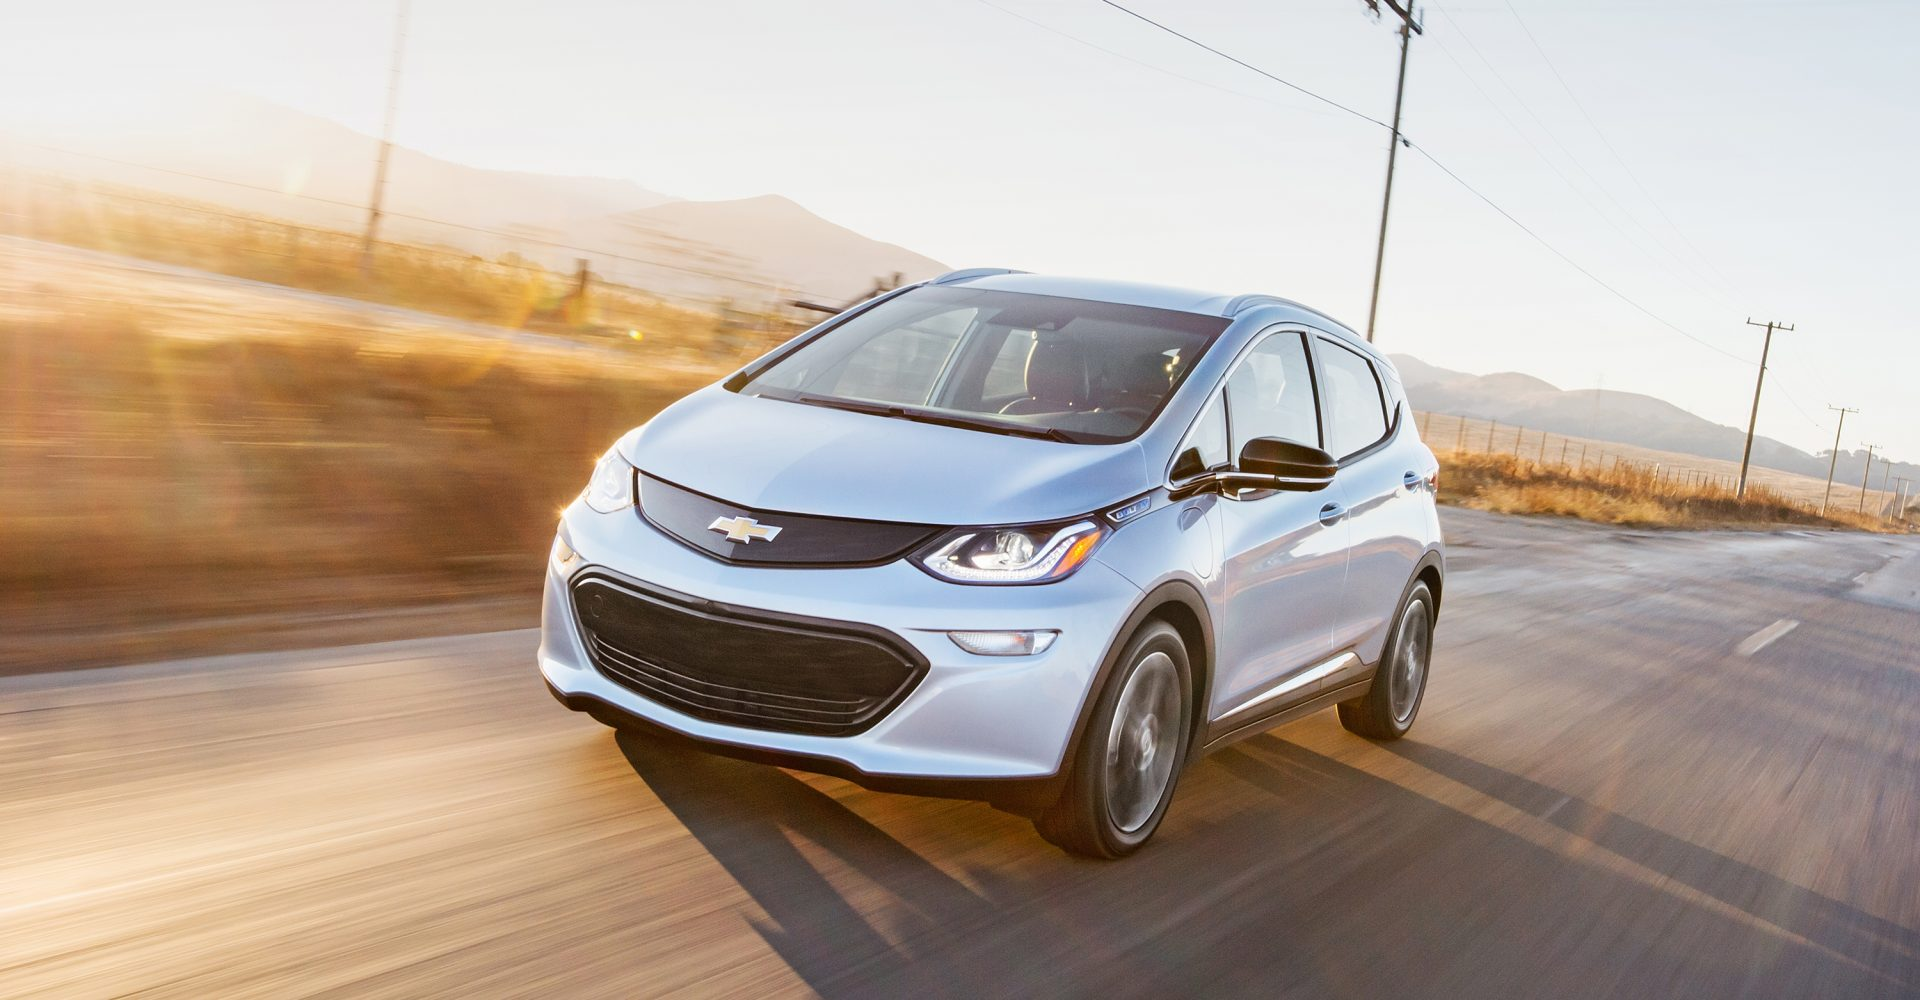 Autonomous Chevrolet Bolt Proves Flawless In Public Test